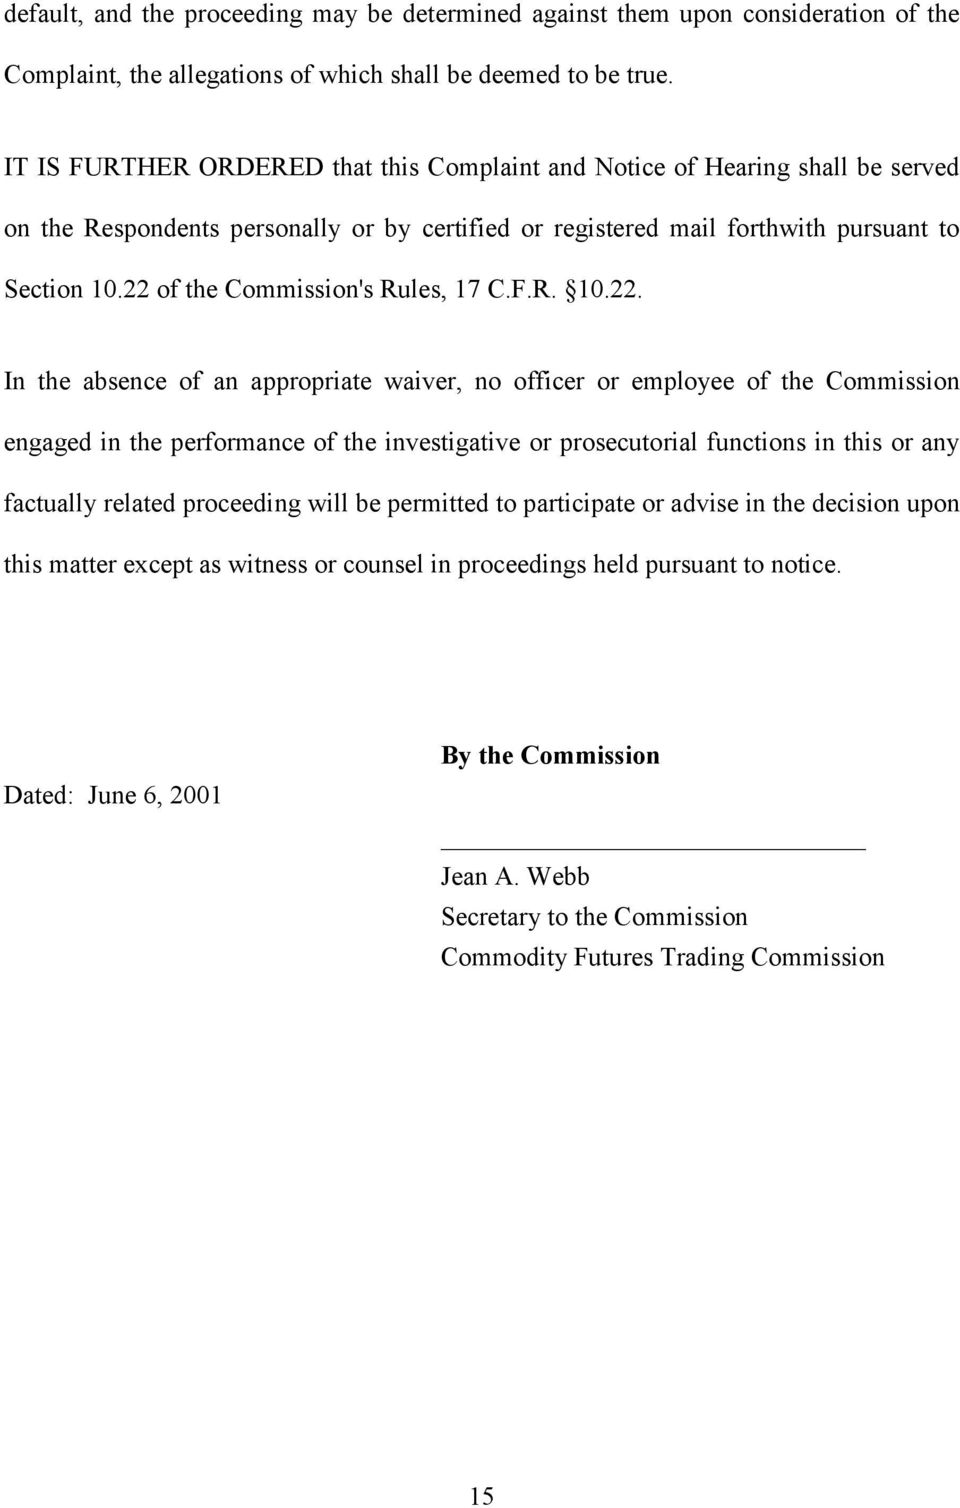 22 of the Commission's Rules, 17 C.F.R. 10.22. In the absence of an appropriate waiver, no officer or employee of the Commission engaged in the performance of the investigative or prosecutorial